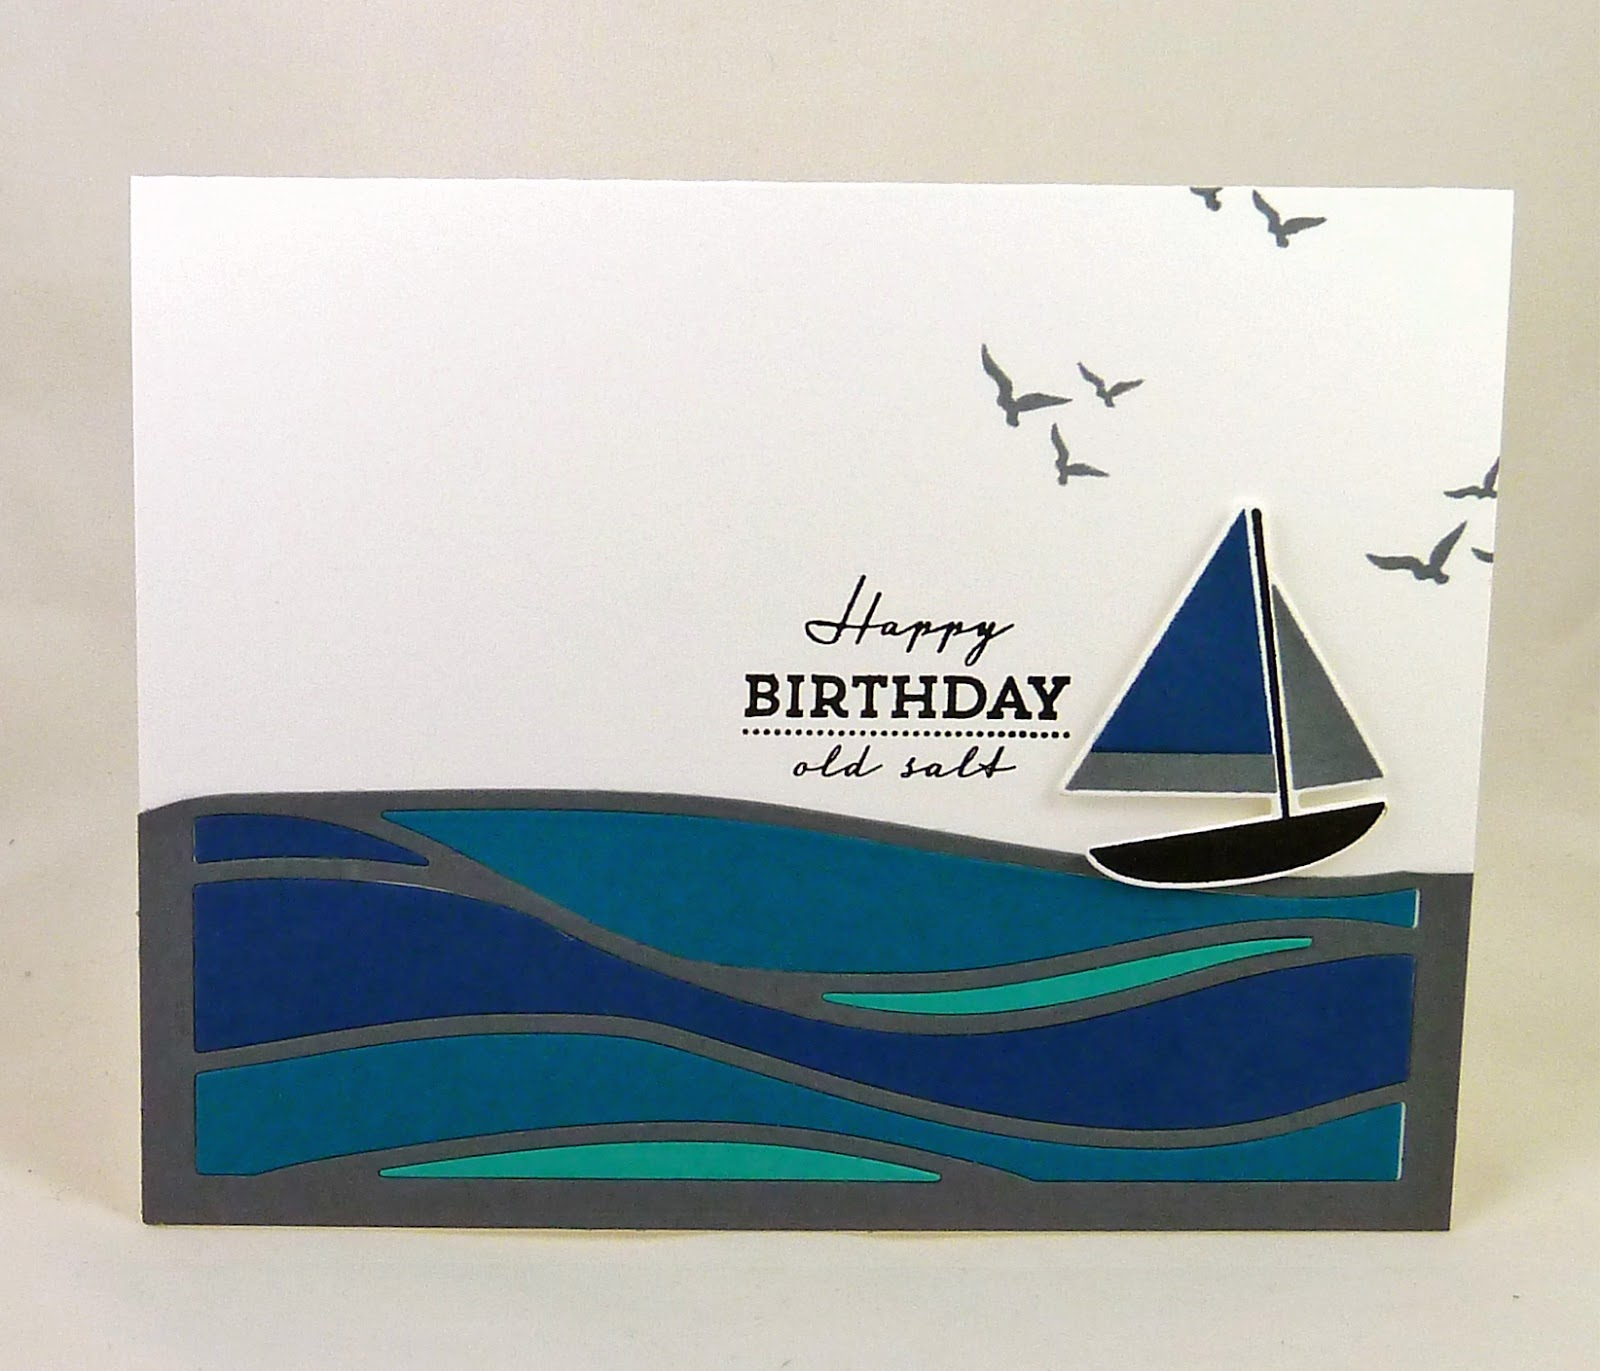 Cards-by-the-Sea: ColourQ #331....Happy Birthday Old Salt